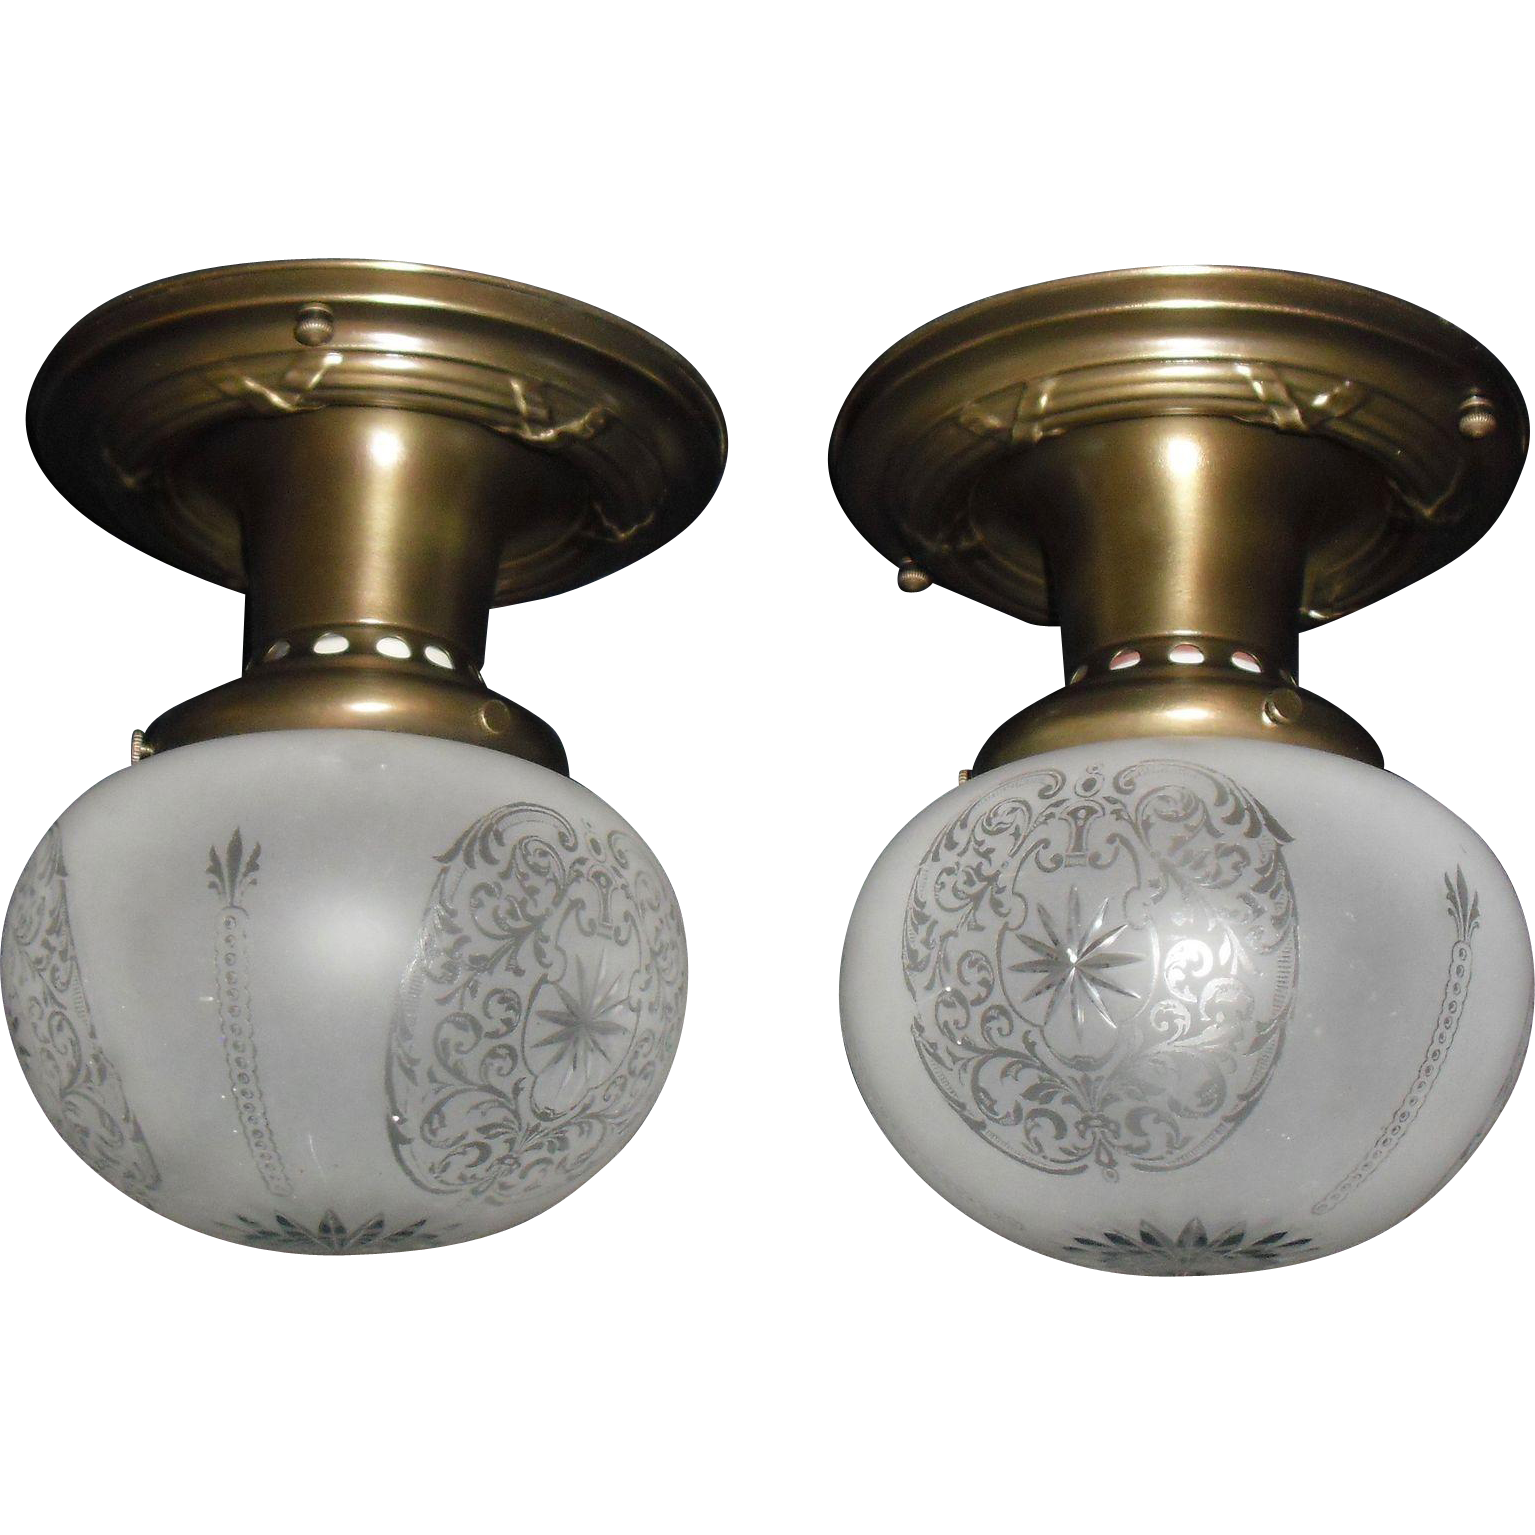 Pair Early Electric Deep Etched and Cut Gass Shades in Decorated Brass Ceiling Light Fixtures